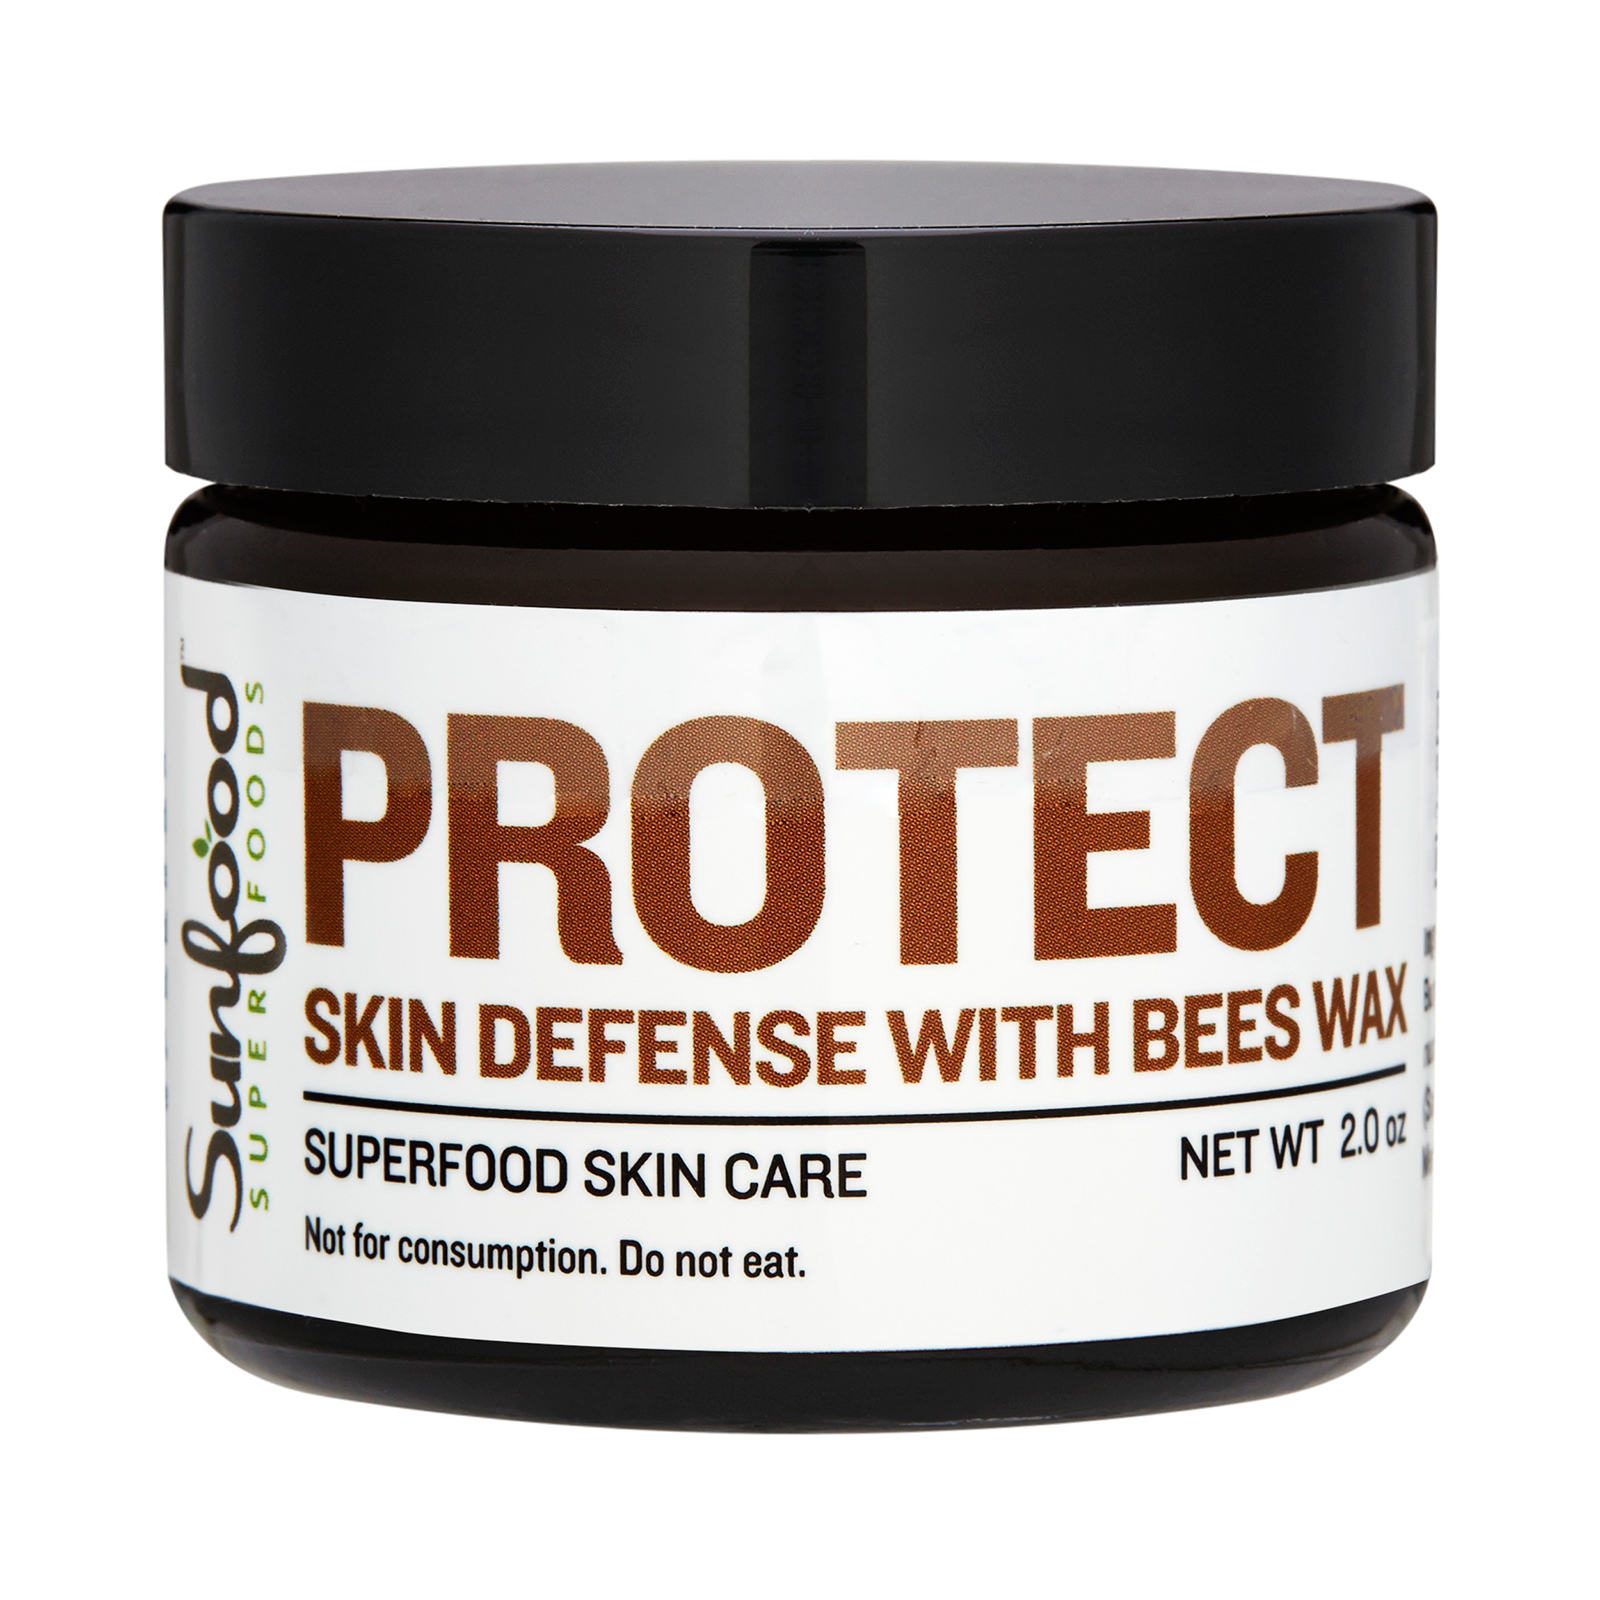 Sunfood  Protect Skin Defense with Bees Wax 2oz,